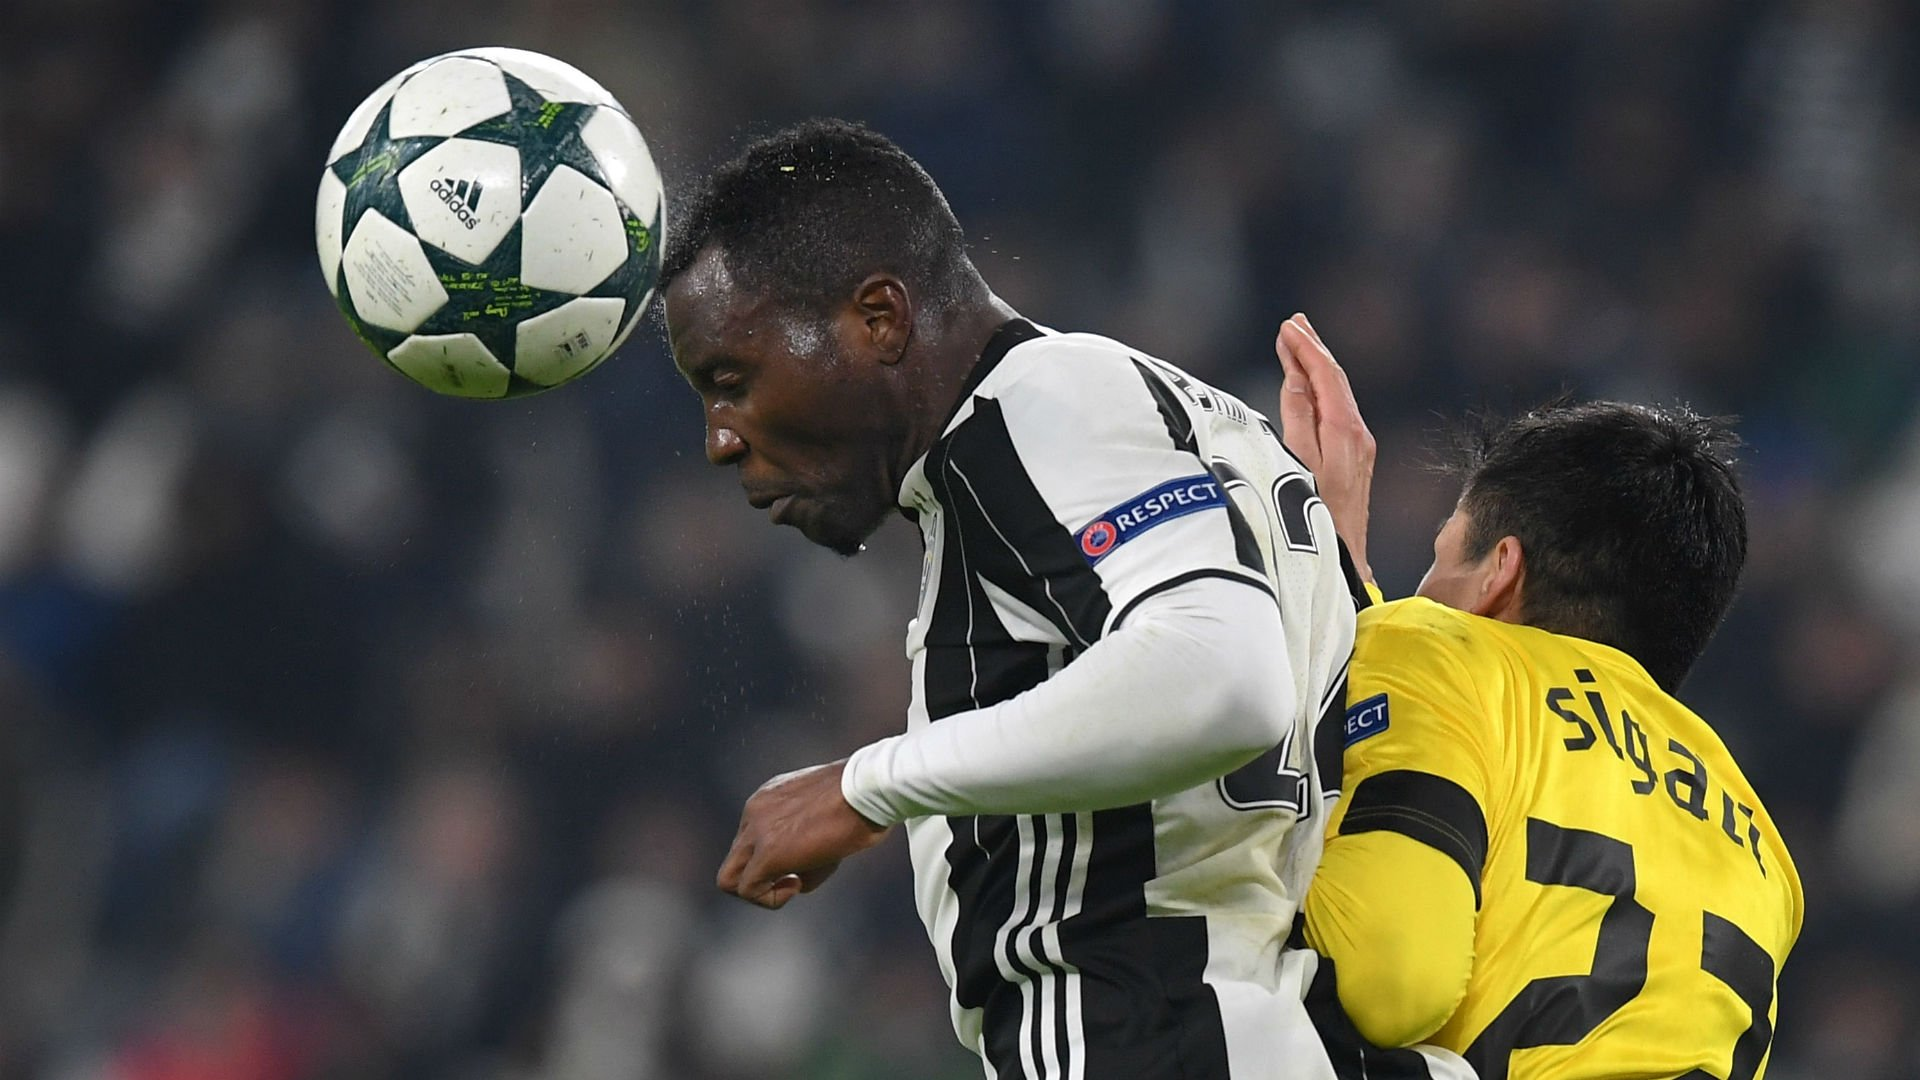 Could Alex Sandro's Chelsea move keep Kwadwo Asamoah at Juventus?